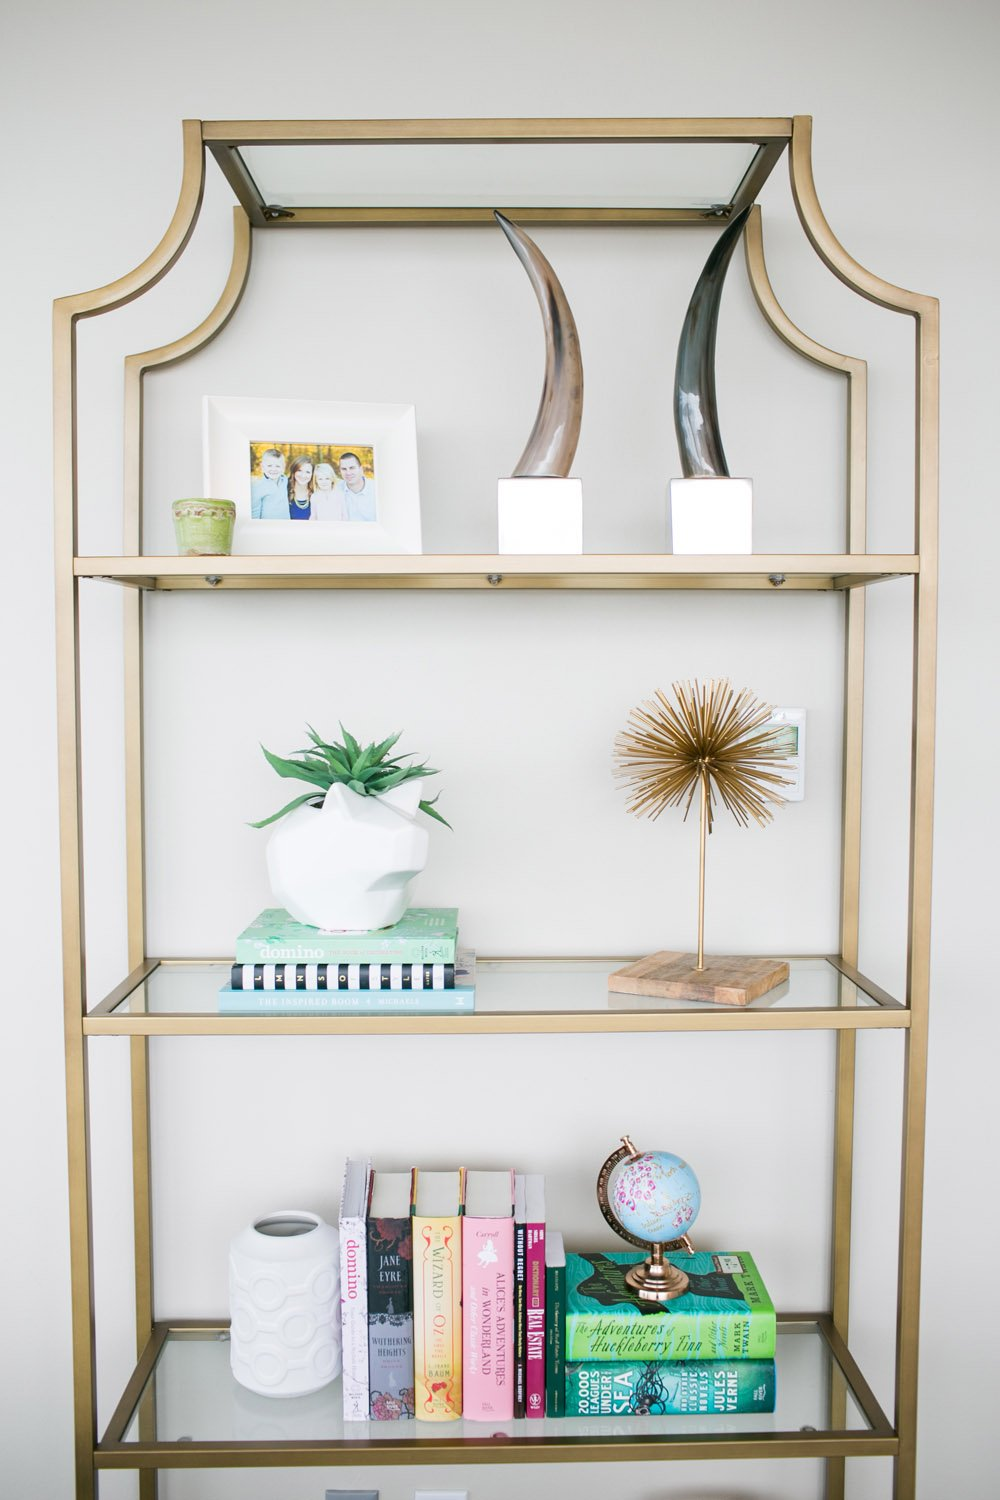 designer-styled bookshelf with large scale decorative accessories